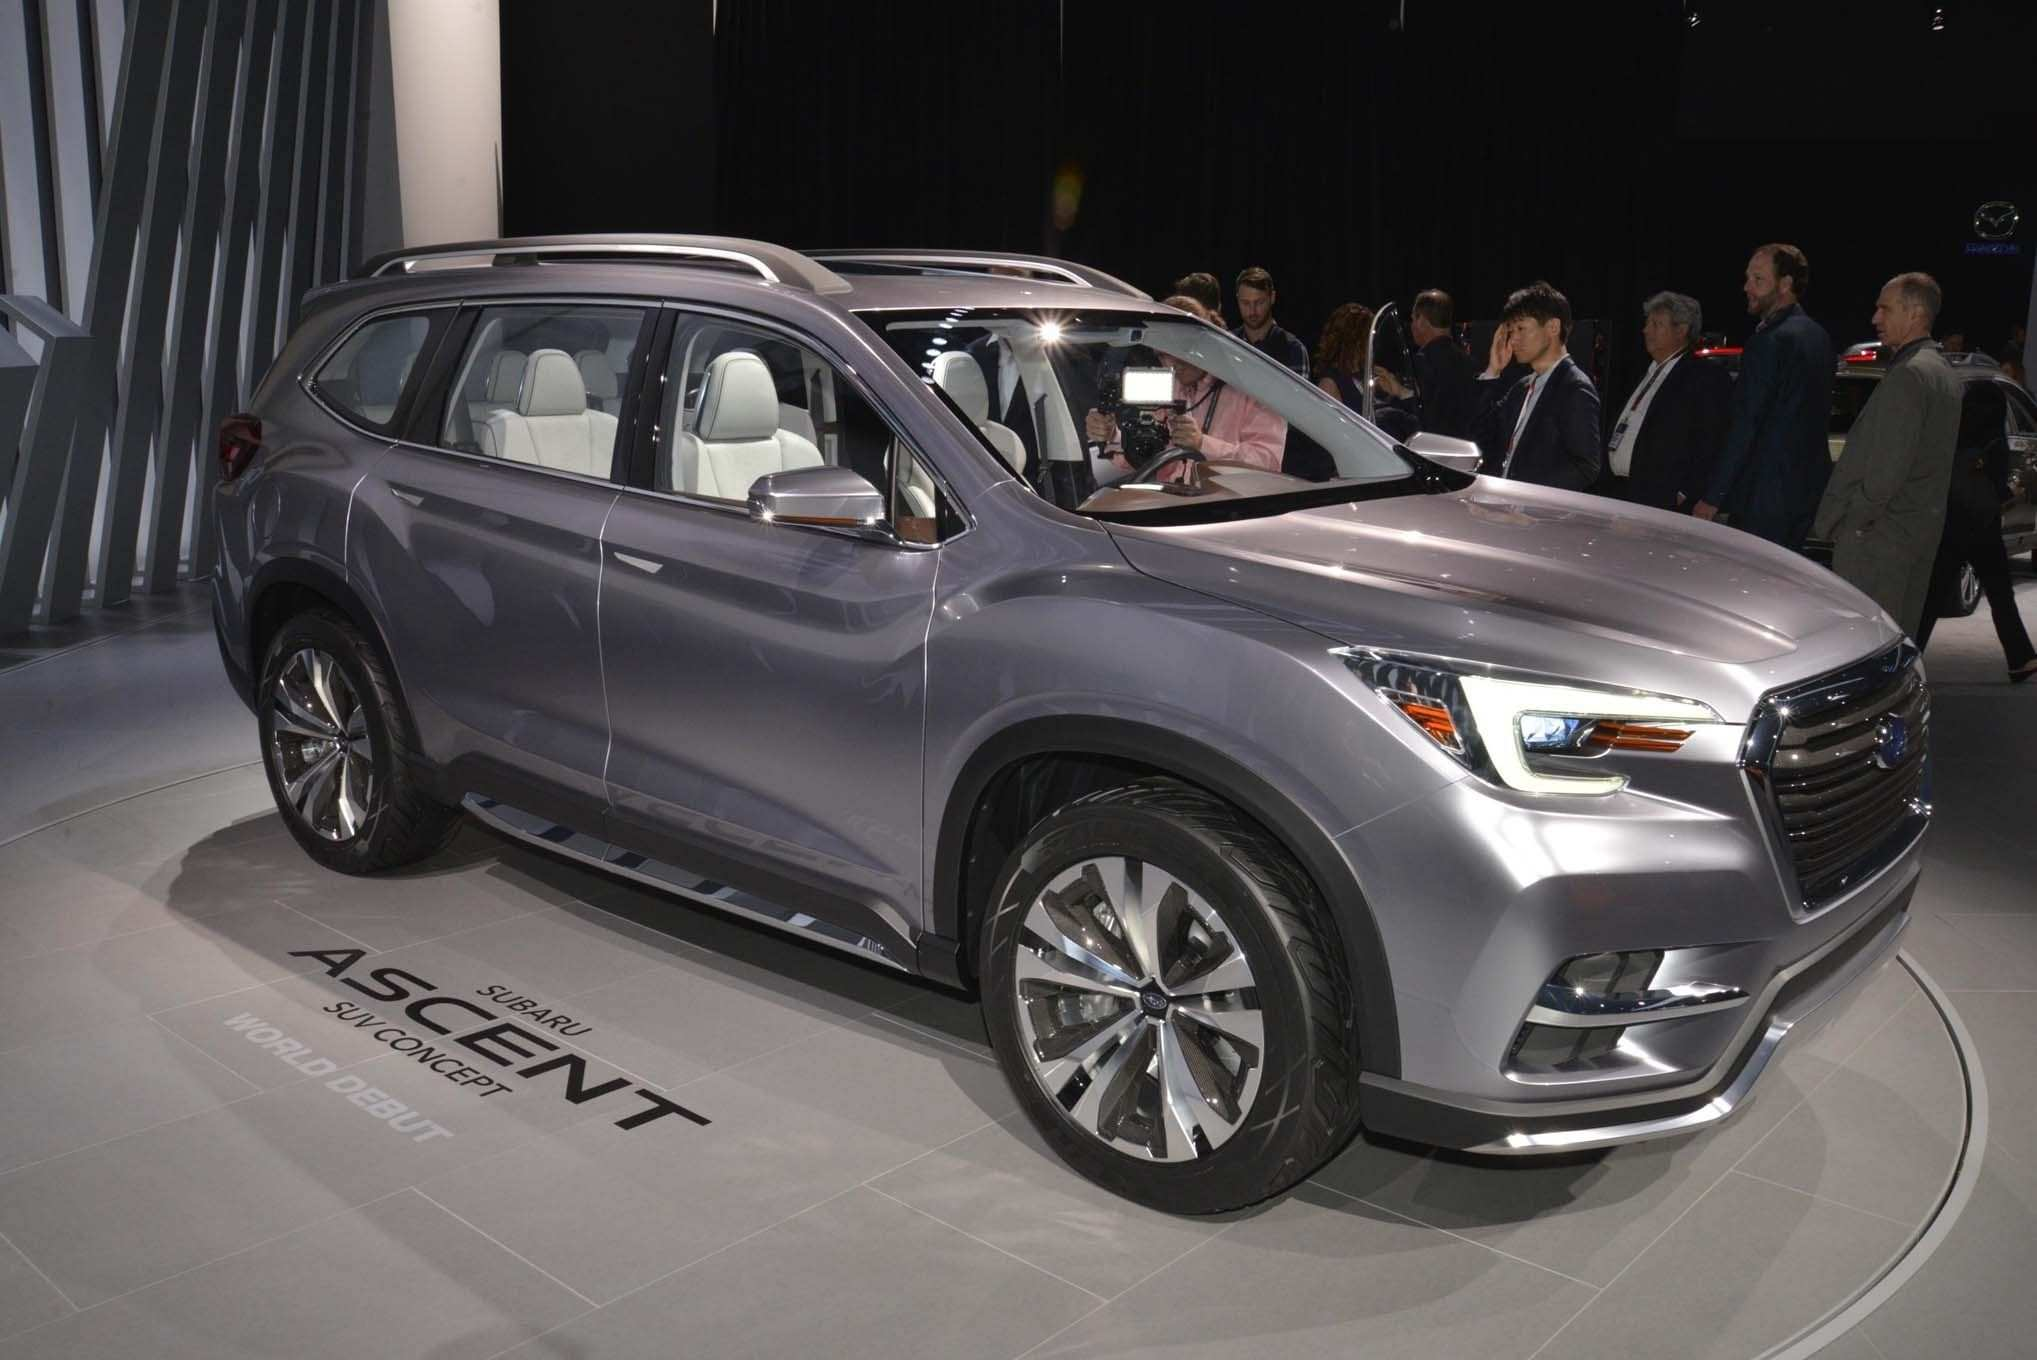 12 Concept of 2019 Subaru Outback Photos Research New with 2019 Subaru Outback Photos